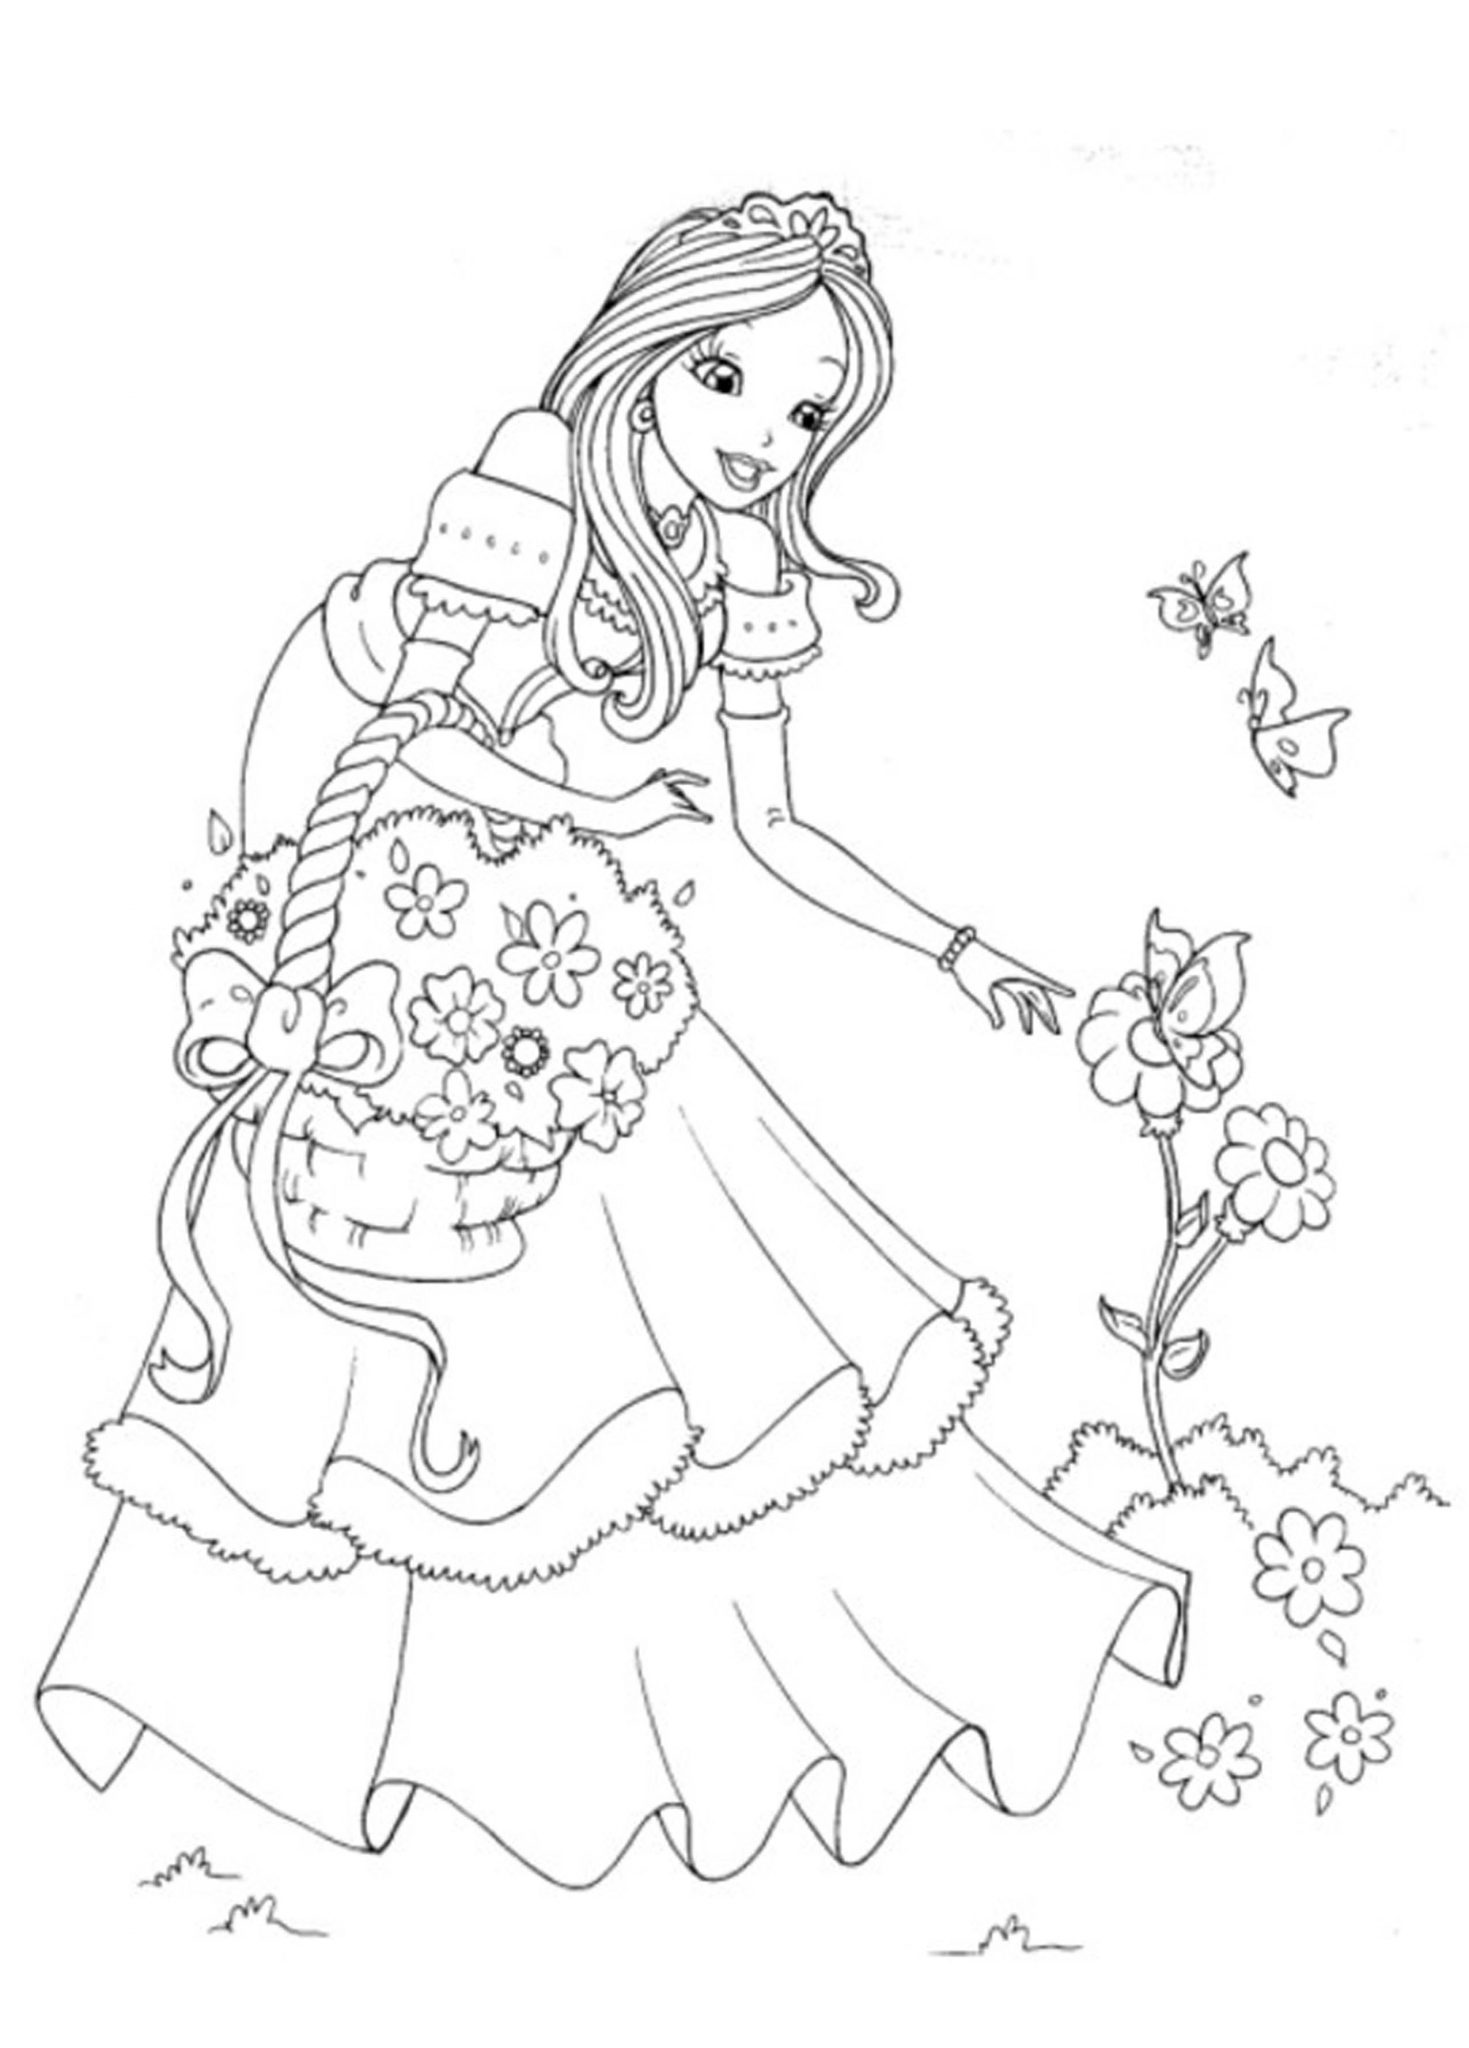 disney princess coloring worksheets print download princess coloring pages support the worksheets coloring disney princess